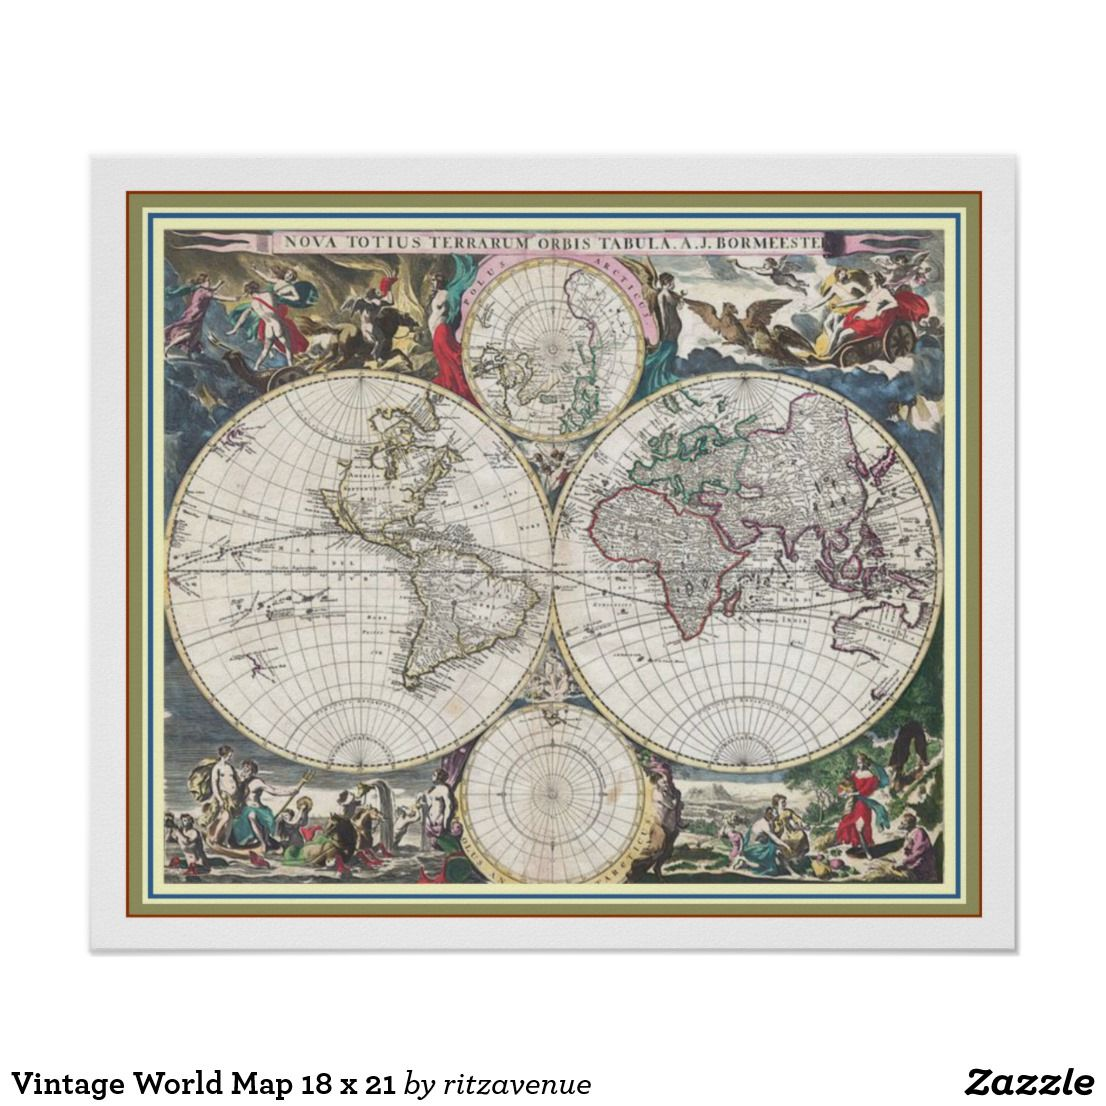 Vintage world map 18 x 21 poster 16 art deconouveau old vintage world map 18 x 21 poster 16 gumiabroncs Images